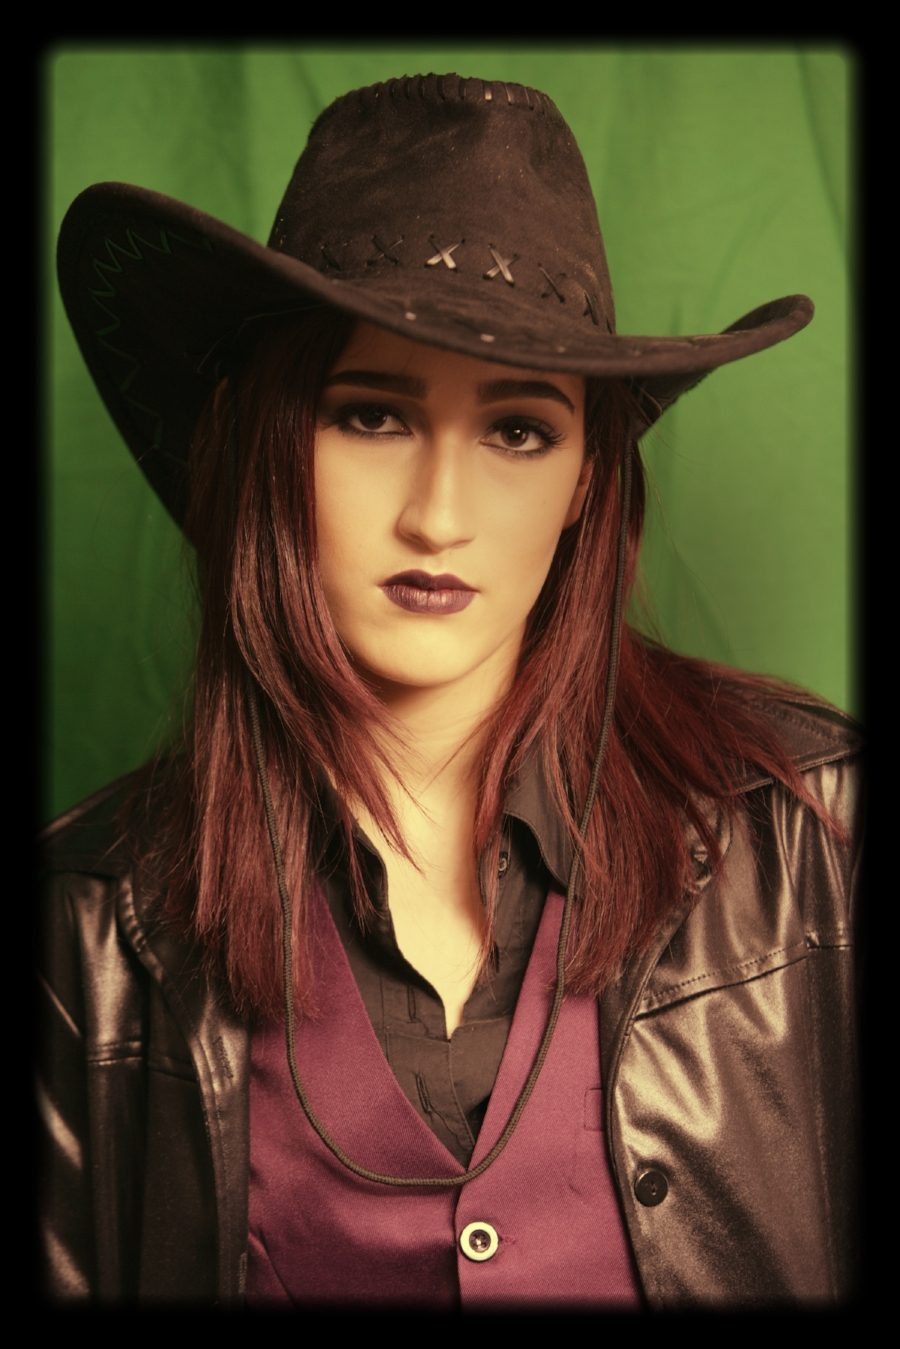 """Sanise Lebron  as Bobby Lynn  Sanise Ivonne Lebron is proud to be playing the evil sister Bobby Lynn; in """"The King of the Rodeo"""". She is extremely delighted to be working once again with the Bennett Academy of the Performing Arts, who she worked with casted as Ms. Dewitt in """"What she Deserves"""". Sanise has studied with Bennett Academy for three years. Sanise also attended Rybin Studio of Drama and while there completed the Acting and Auditioning Techniques program & the Acting &Theater program. While at Rybin she performed in the following productions: """"Oz"""" at MMAC Theaterwhere she played the role of the Scarecrow, """"El Cuento Loco"""" at the Times Square Art Center-Off Broadway, she played """"Swat Girl"""", """" Hard knock life a Musical"""" where she played an orphan, at Times Square Art Center-Off Broadway ,and she performed monologues as """"Angelica the Pirate"""" & """" Batgirl the Broke Superhero"""" , she also took part on the Rybin Studio of Drama Bullying PSA for YouTube. Sanise is also a part of her H.S basketball team and competes in Mock Trial State Competitions with the school's Law team. She would like to thank her family & friends for all their love & support."""